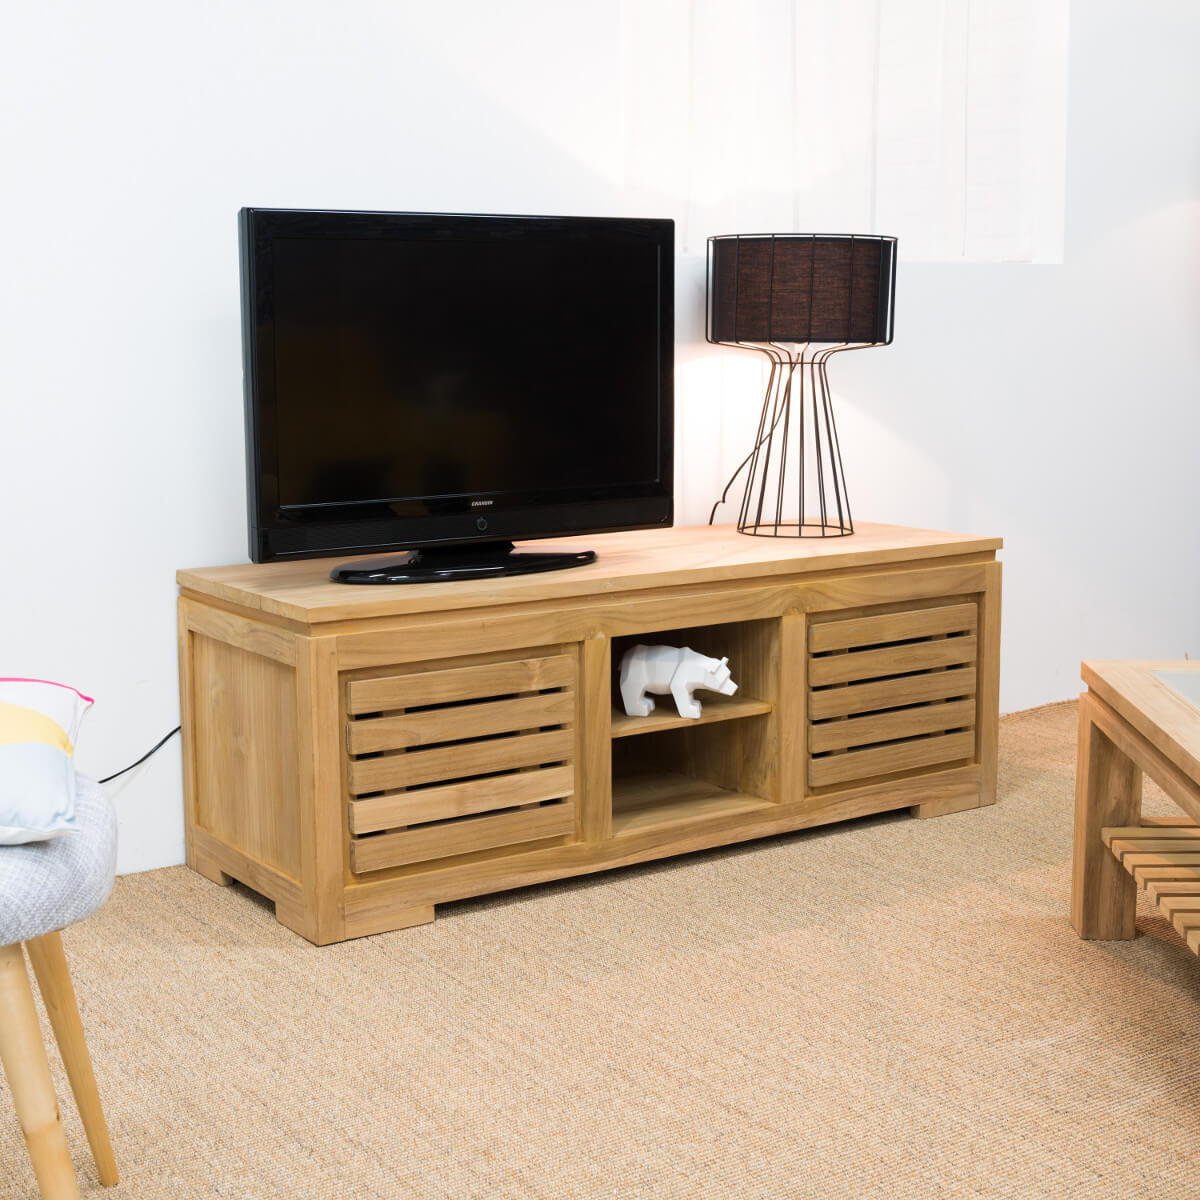 Meuble Tv Teck Meuble Tv Bois Naturel Rectangle Zen 140 Cm # Table Televiseur En Bois